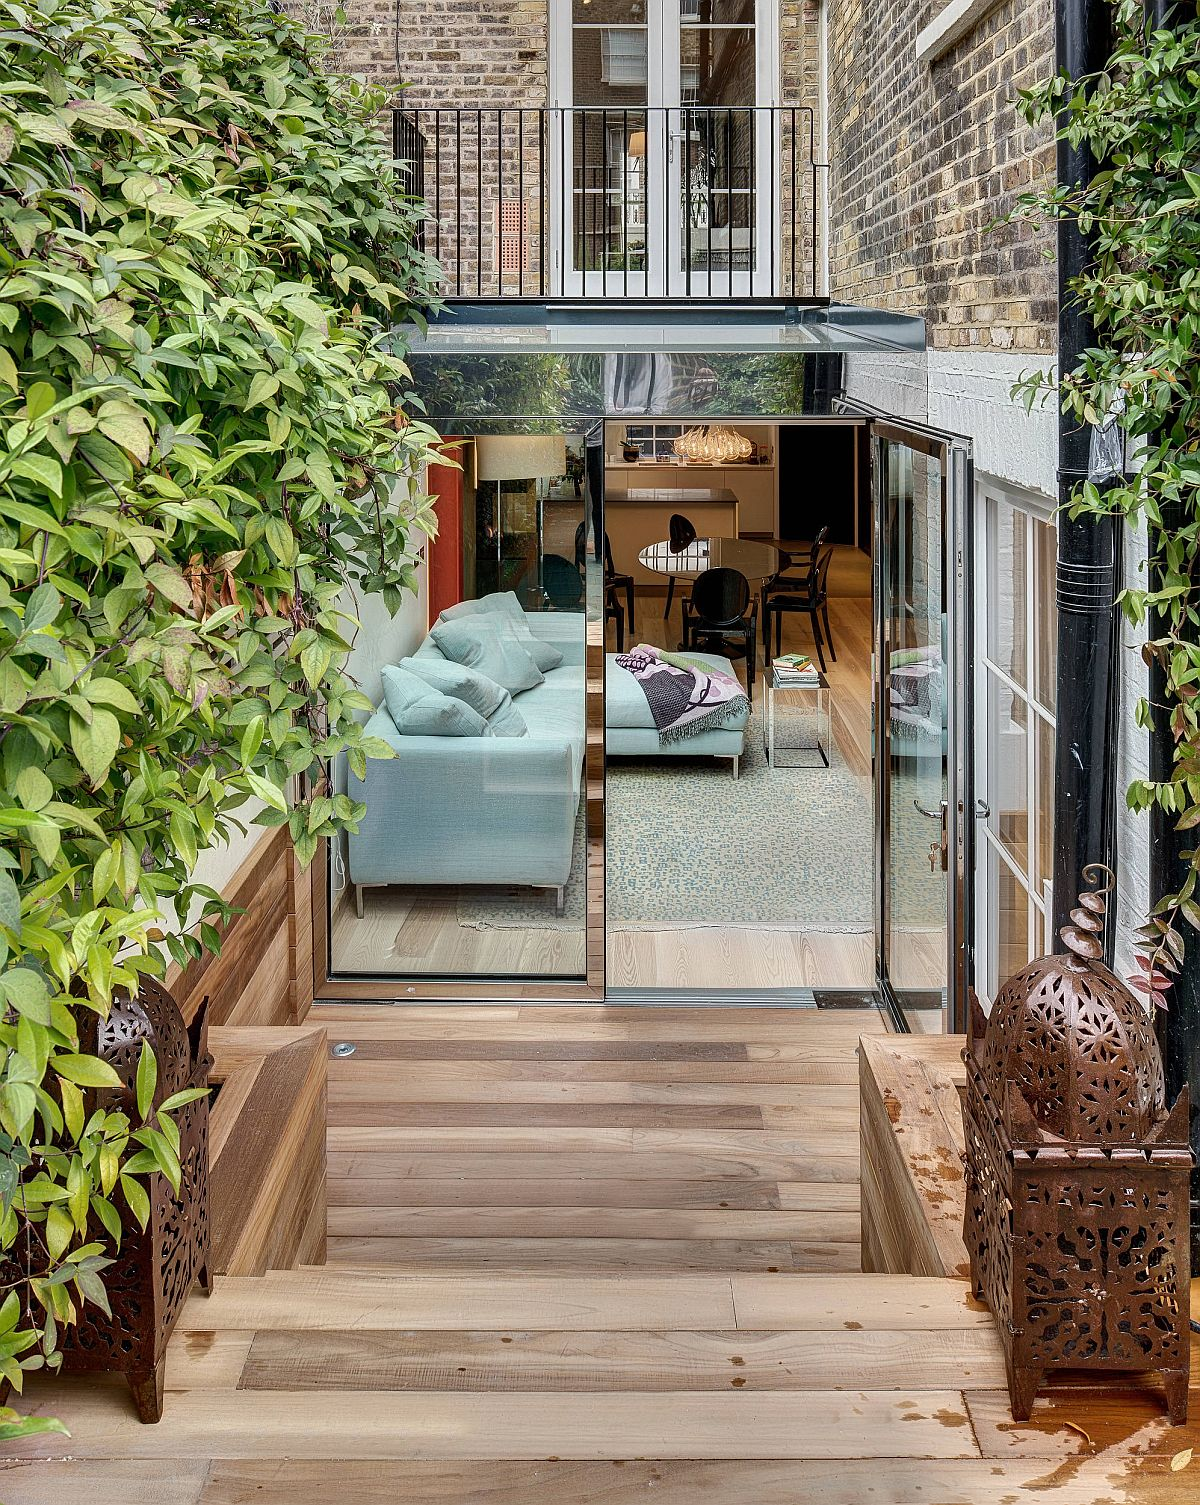 Ingenious sunken design of the deck in this London home delineates space without boundaries